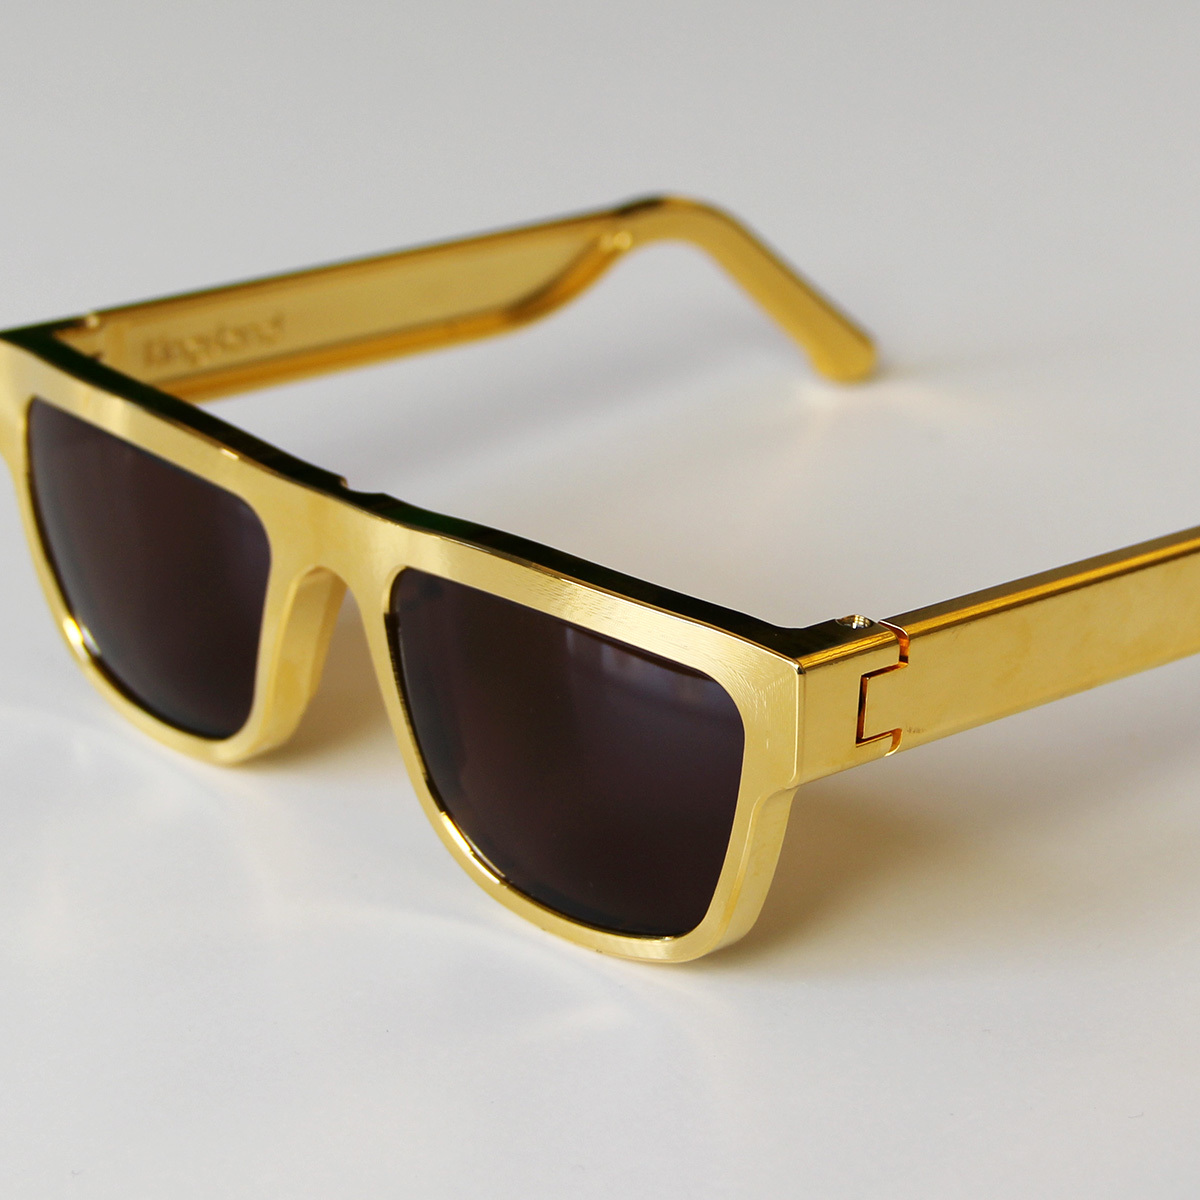 Gold-Plated Sunglasses